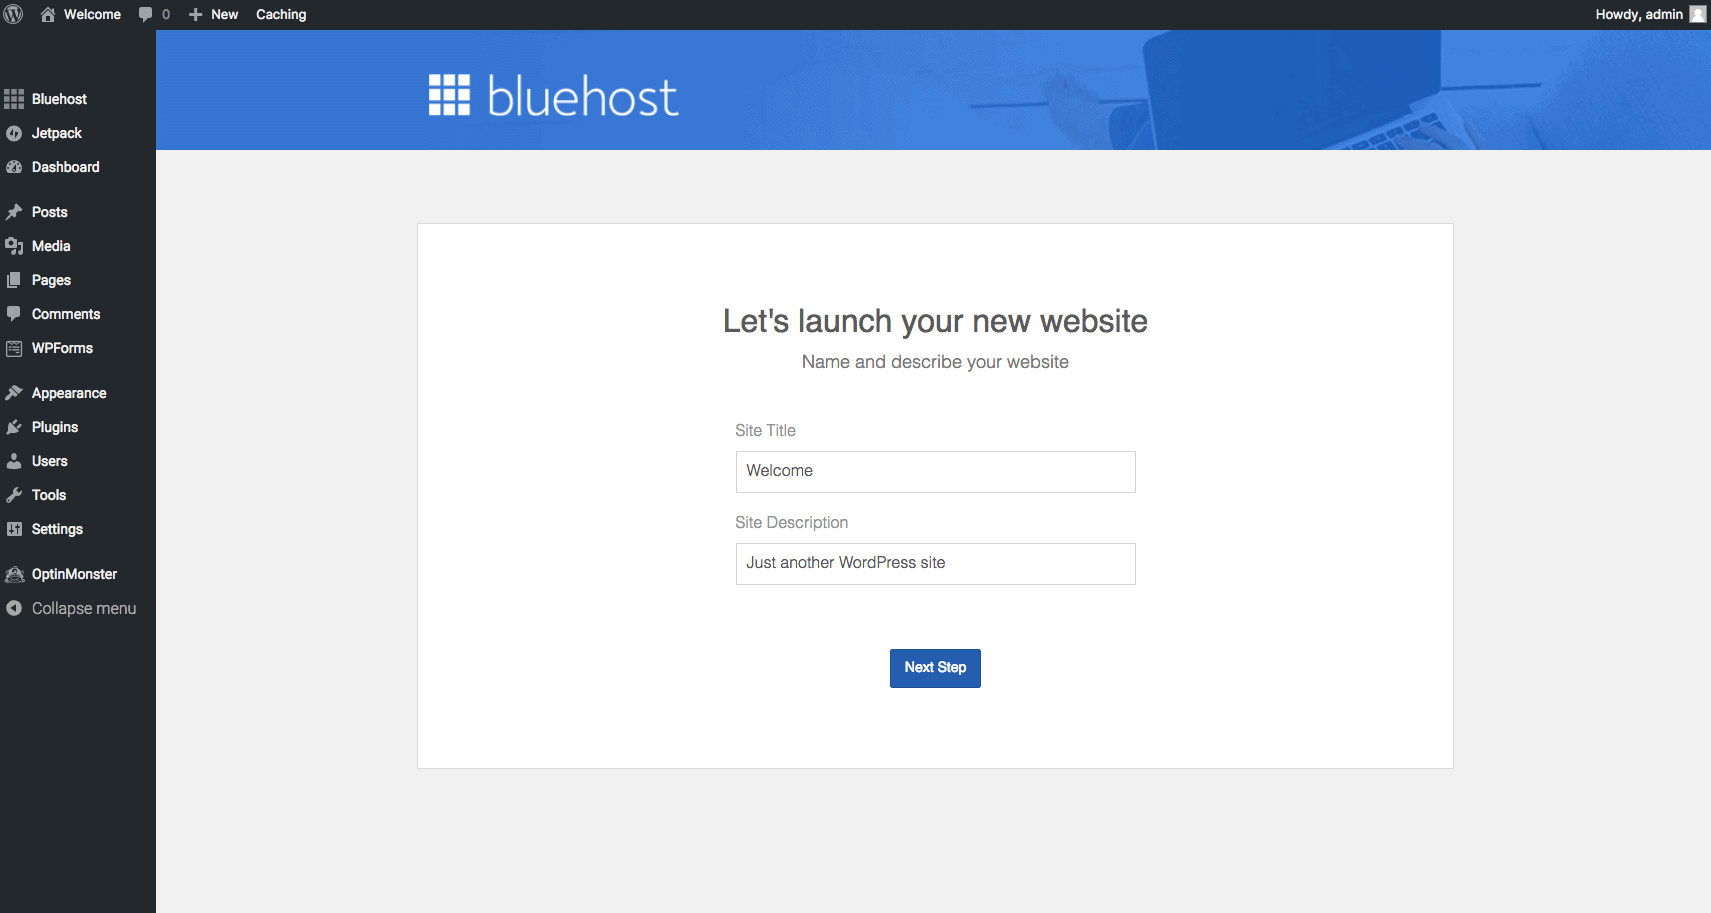 Bluehost set up